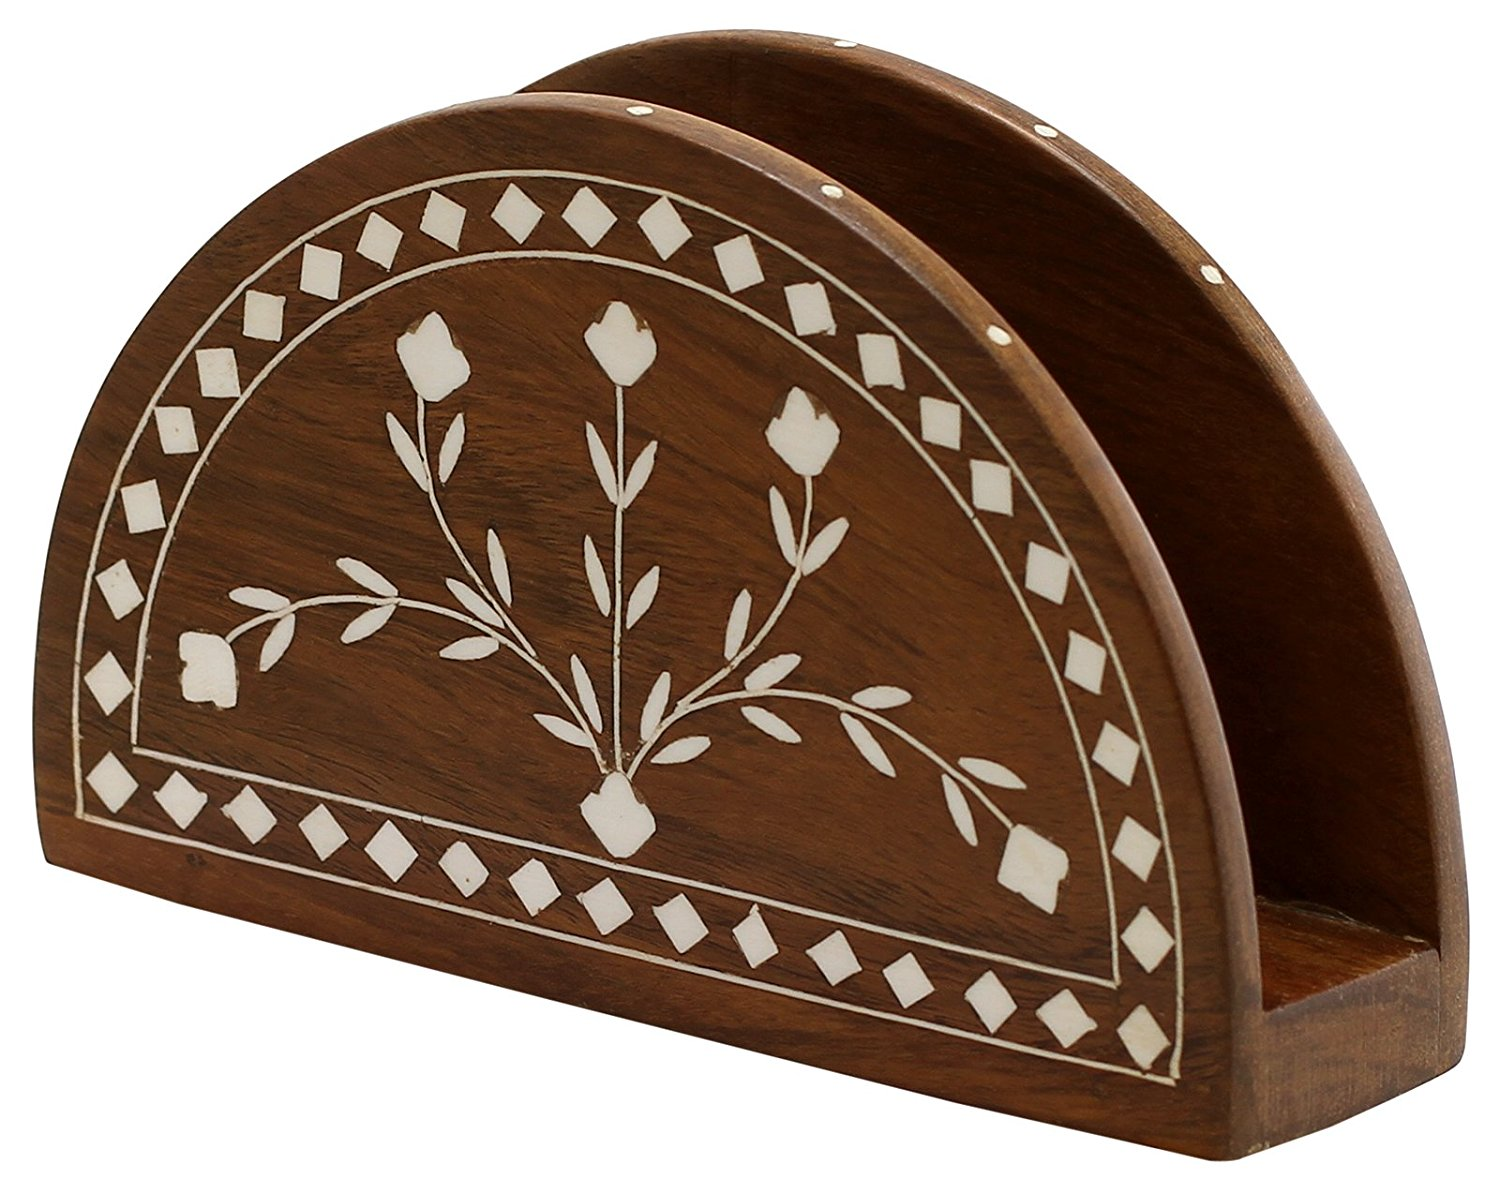 Wooden Napkin Holder Thanksgiving Decorations - Envelope Letter, Document Holder Centerpiece for Table Desk Organiser